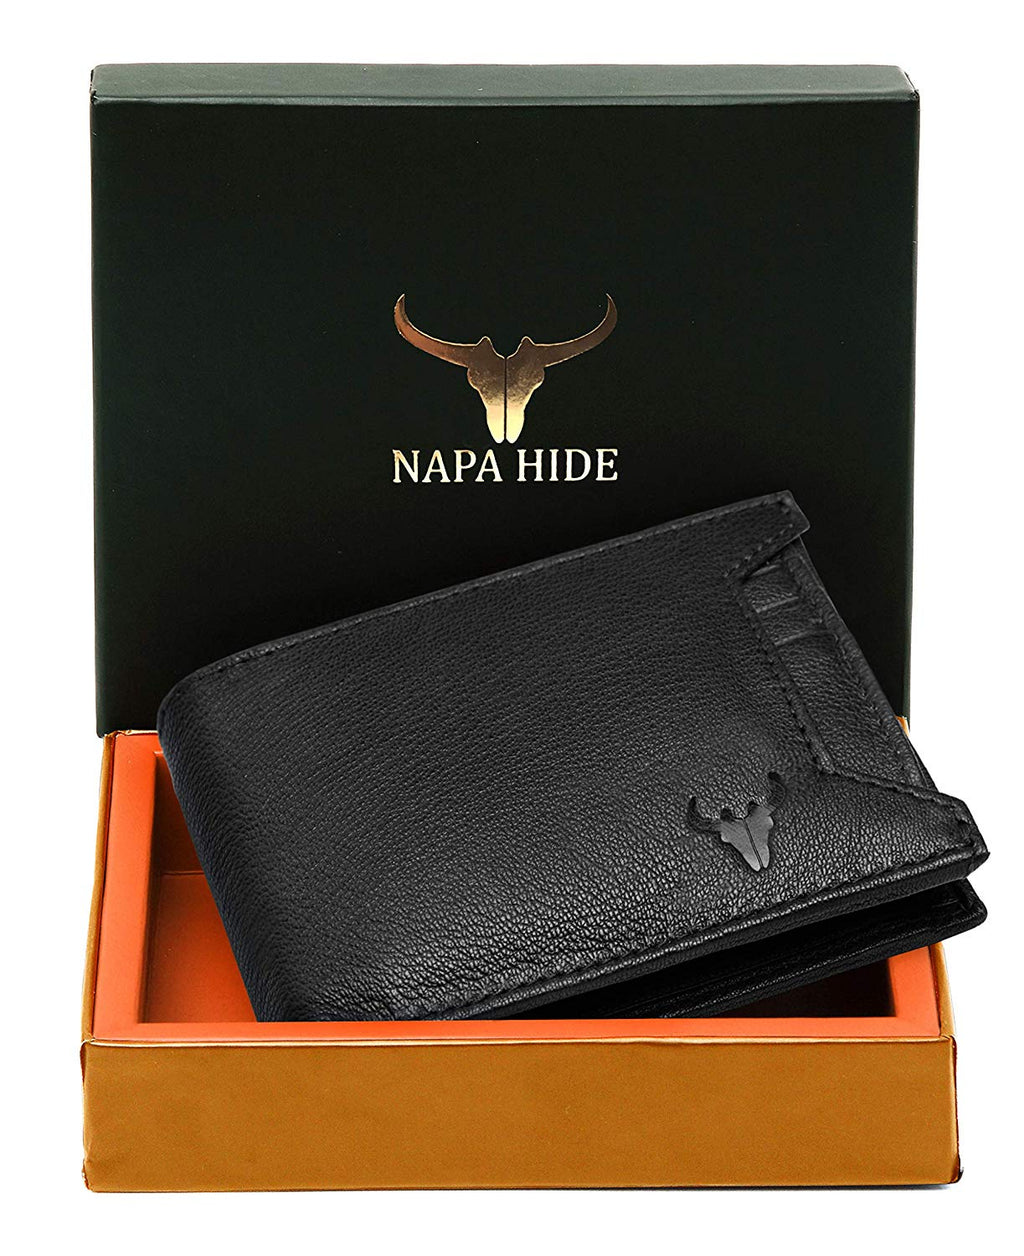 Napa Hide Black Men's Wallet (NPH011 BLK) - WILDHORN